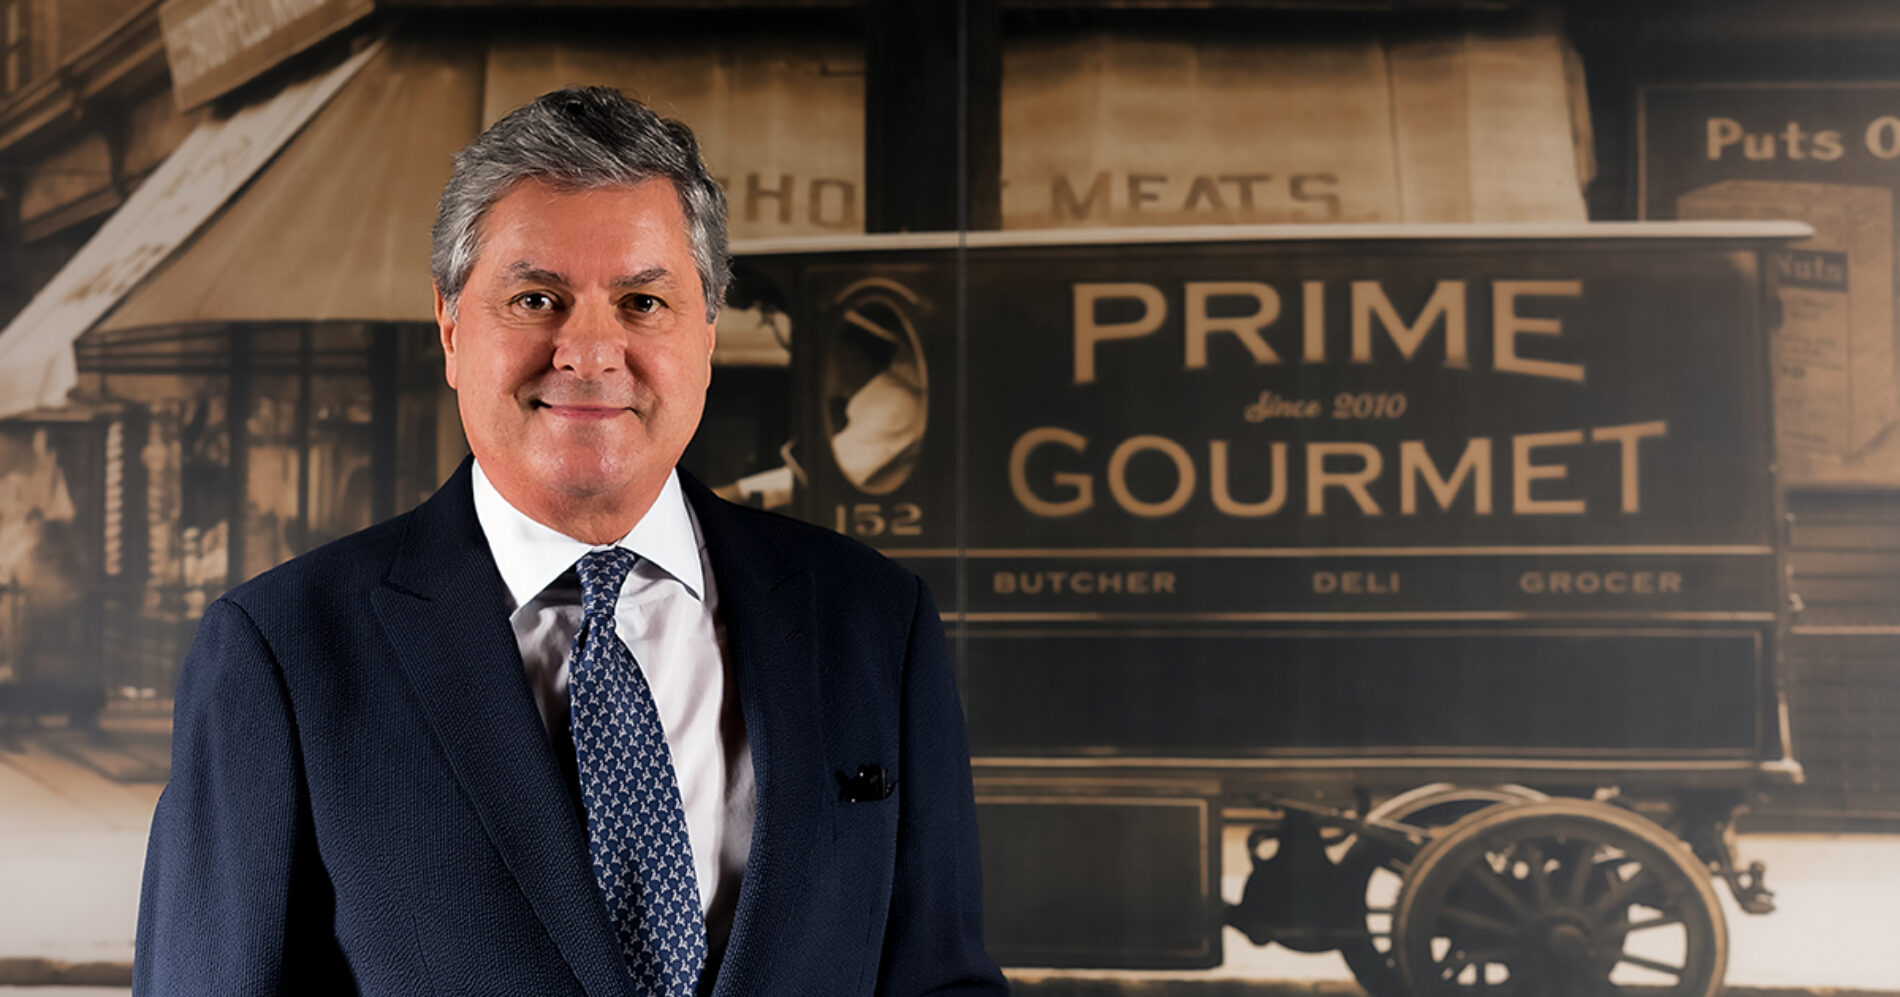 Behind the scenes at Prime Gourmet's new store in Dubai